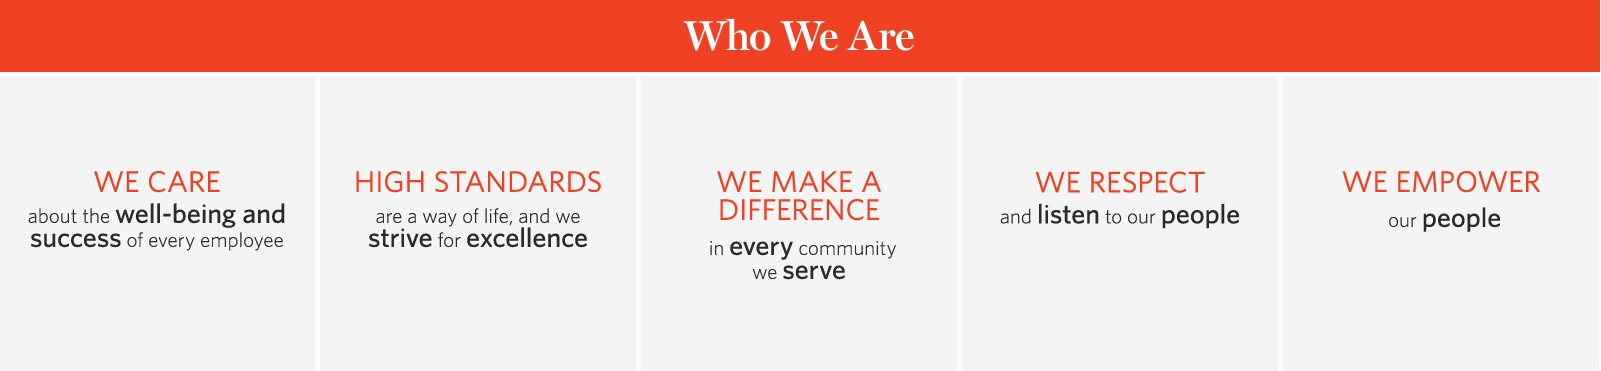 Info graphic: Who We Are. We care about the well-being and success of every employee. High standards are a way of life, and we strive for excellence. We make a difference in every community we serve. We respect and listen to our people. We empower our people.